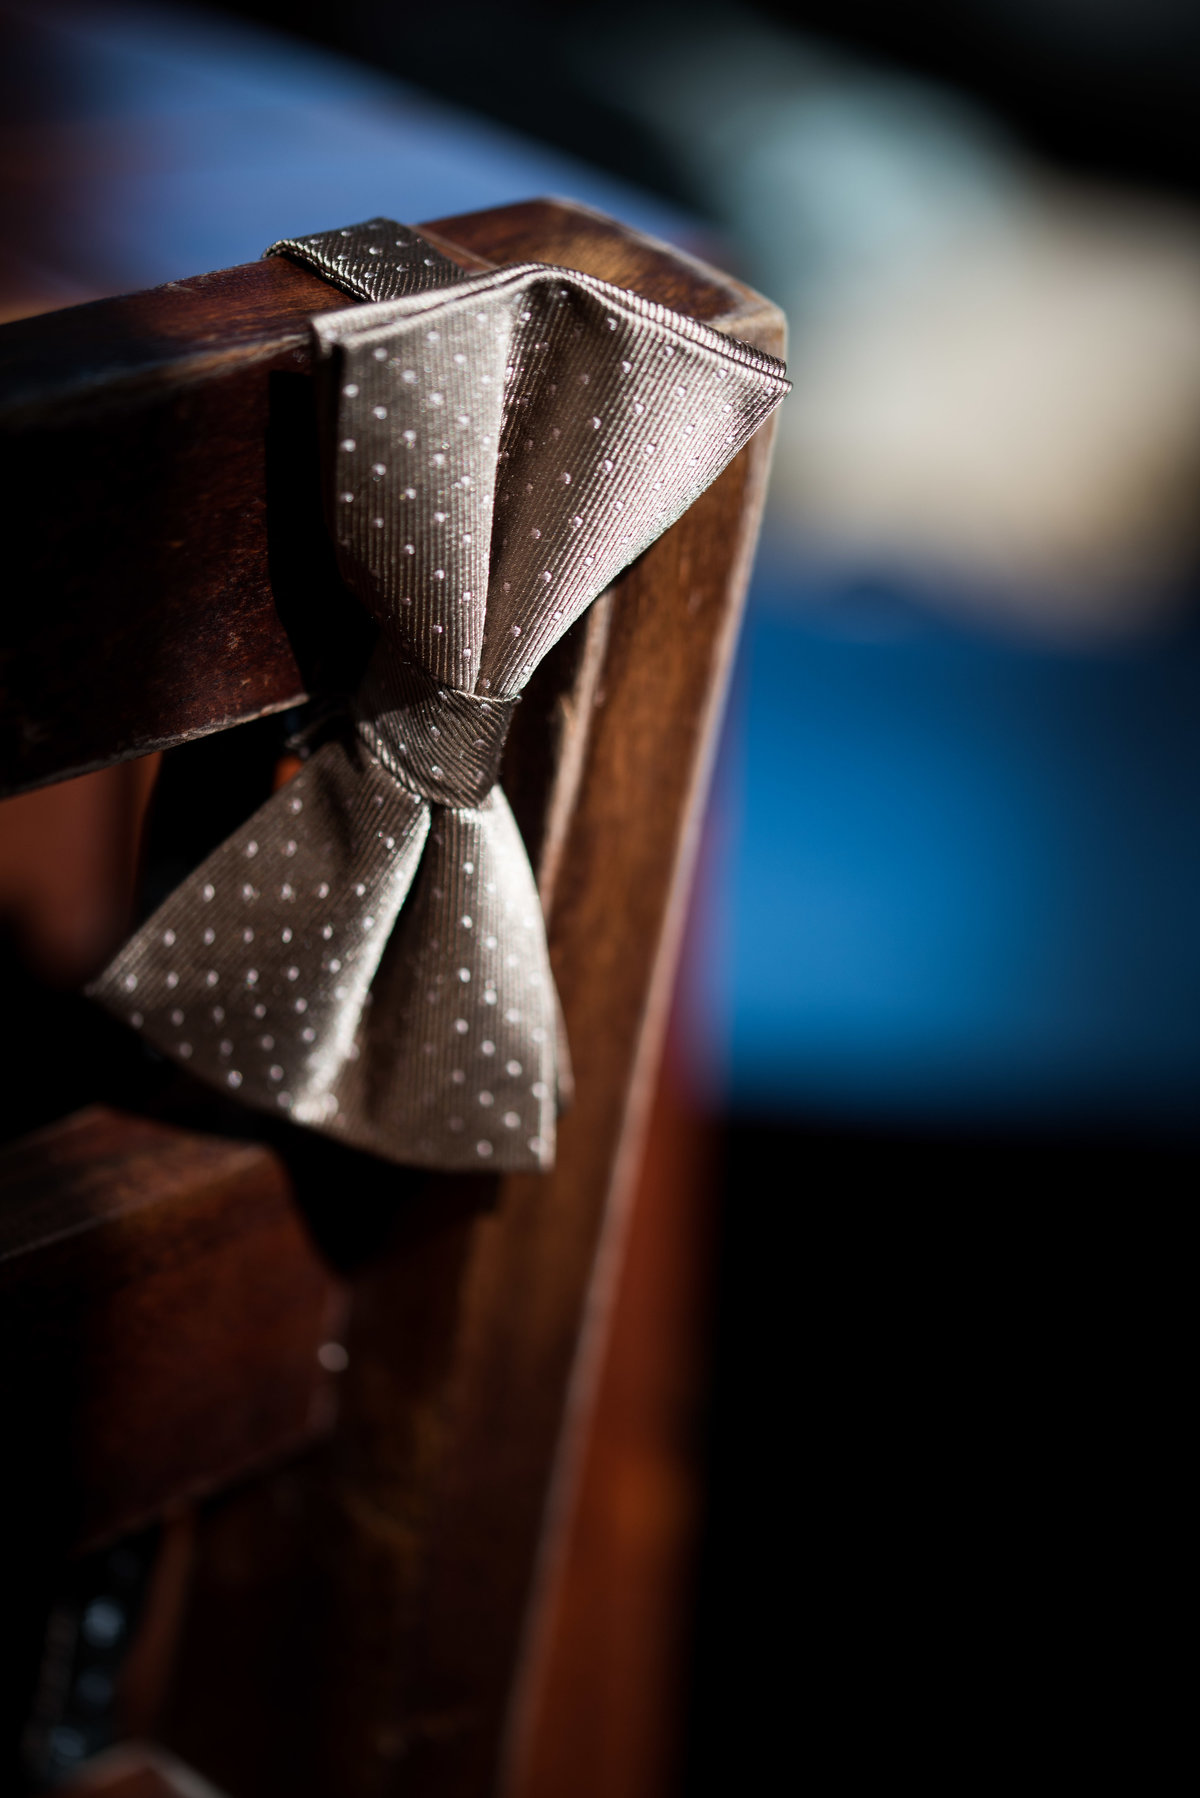 Bow tie for groom, Chicago wedding, detail.